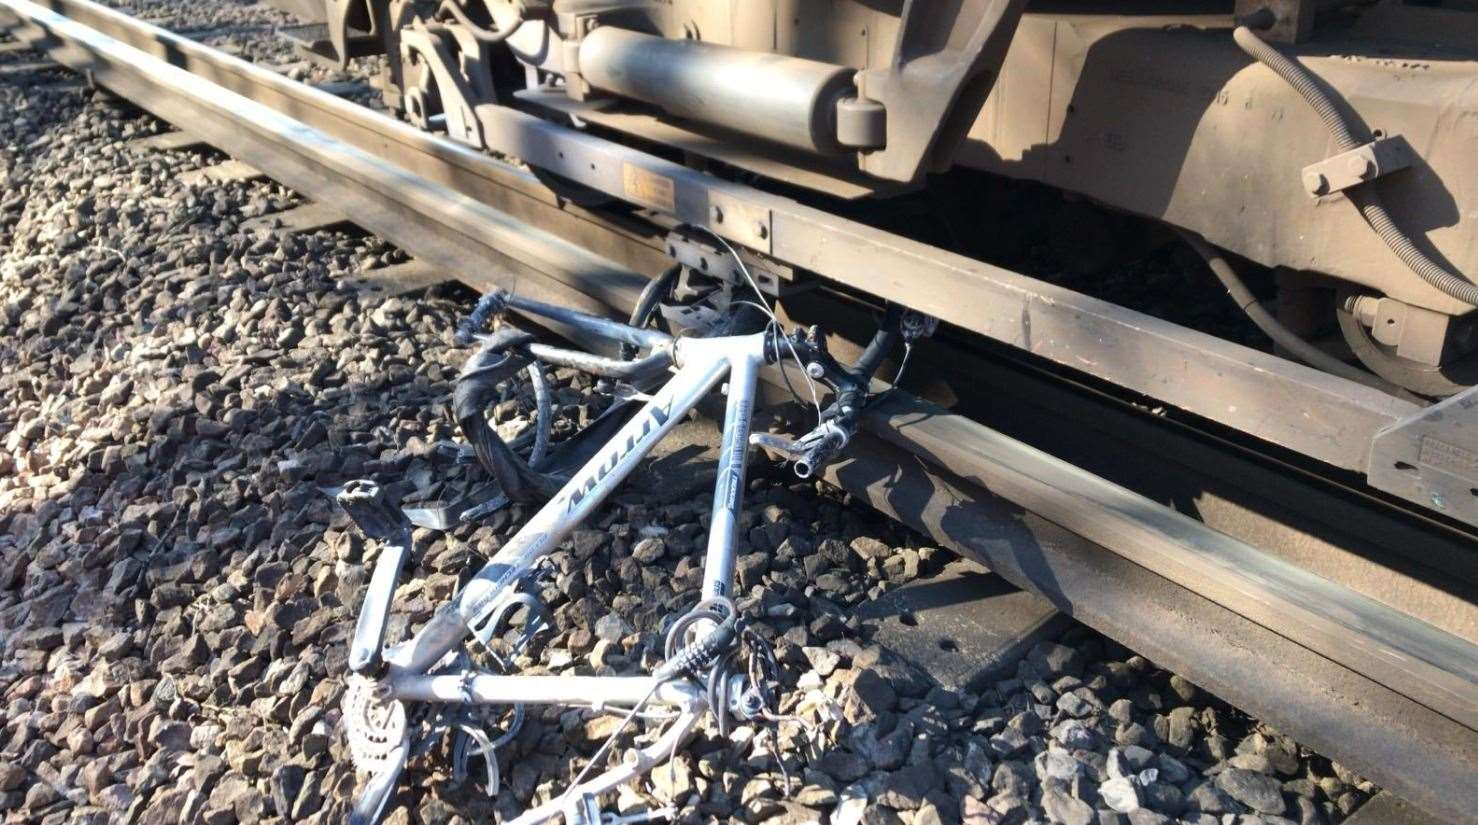 A train struck a bike on the tracks near Swanley. Picture: Network Rail Kent and Sussex